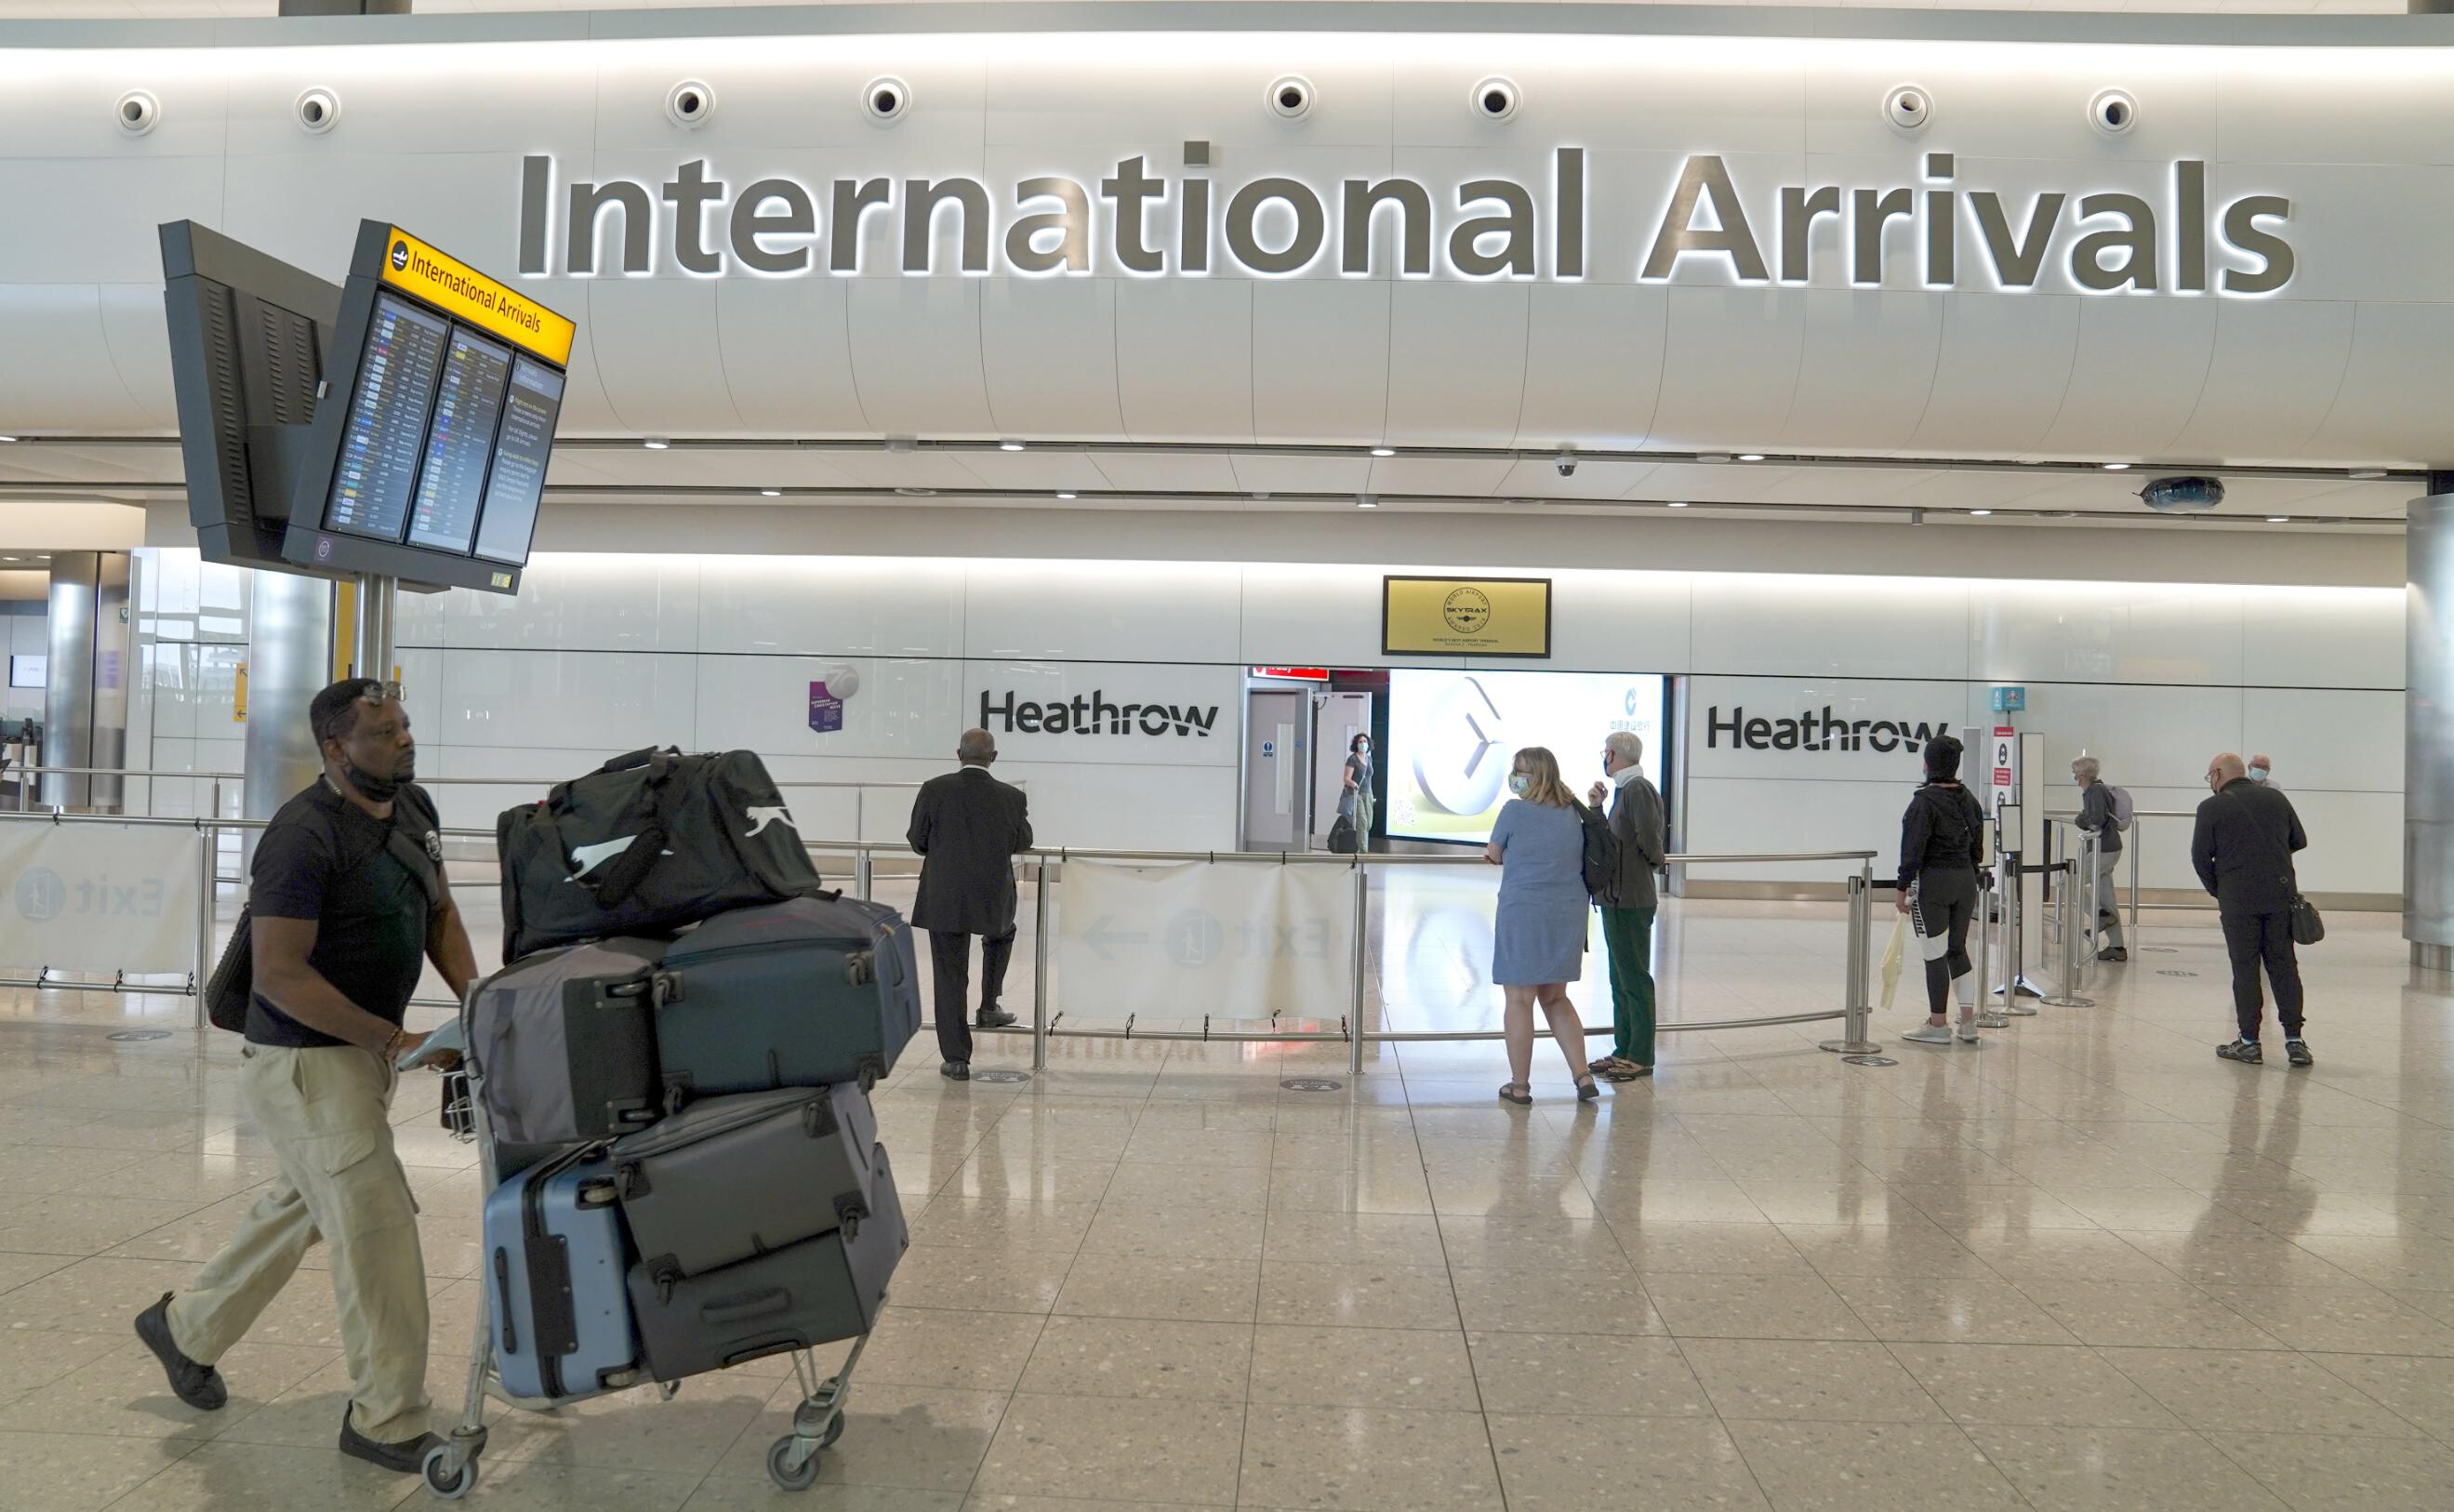 Britain was a world leader in travel. Not anymore